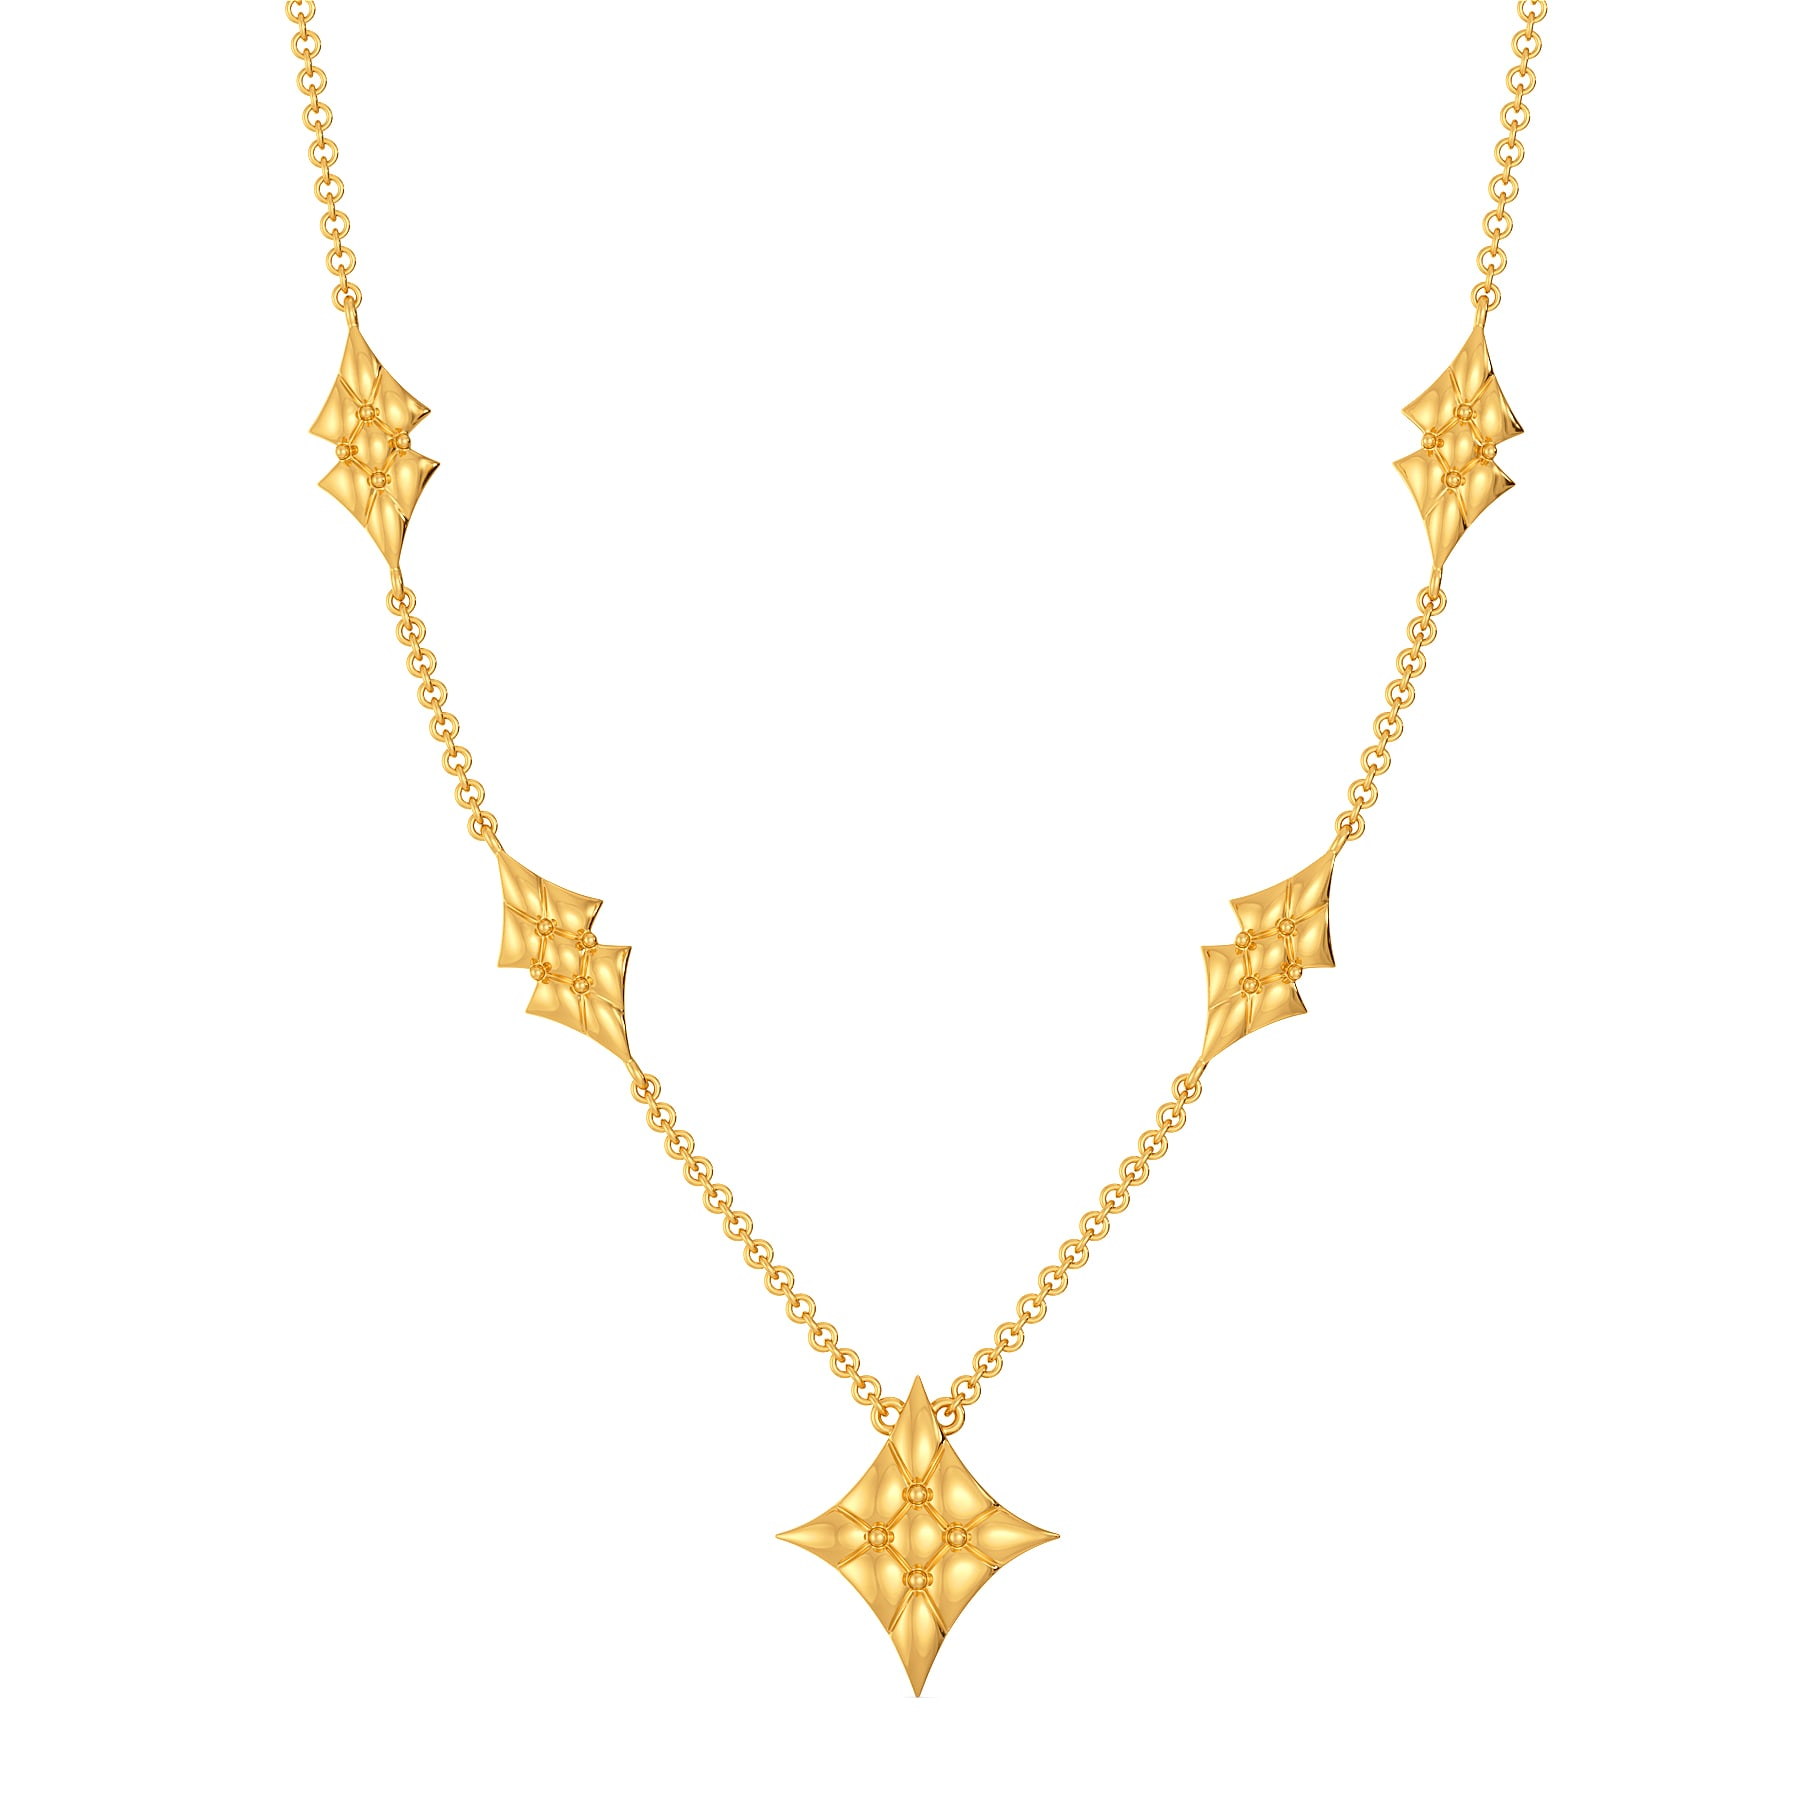 Quilty Leisure Gold Necklaces